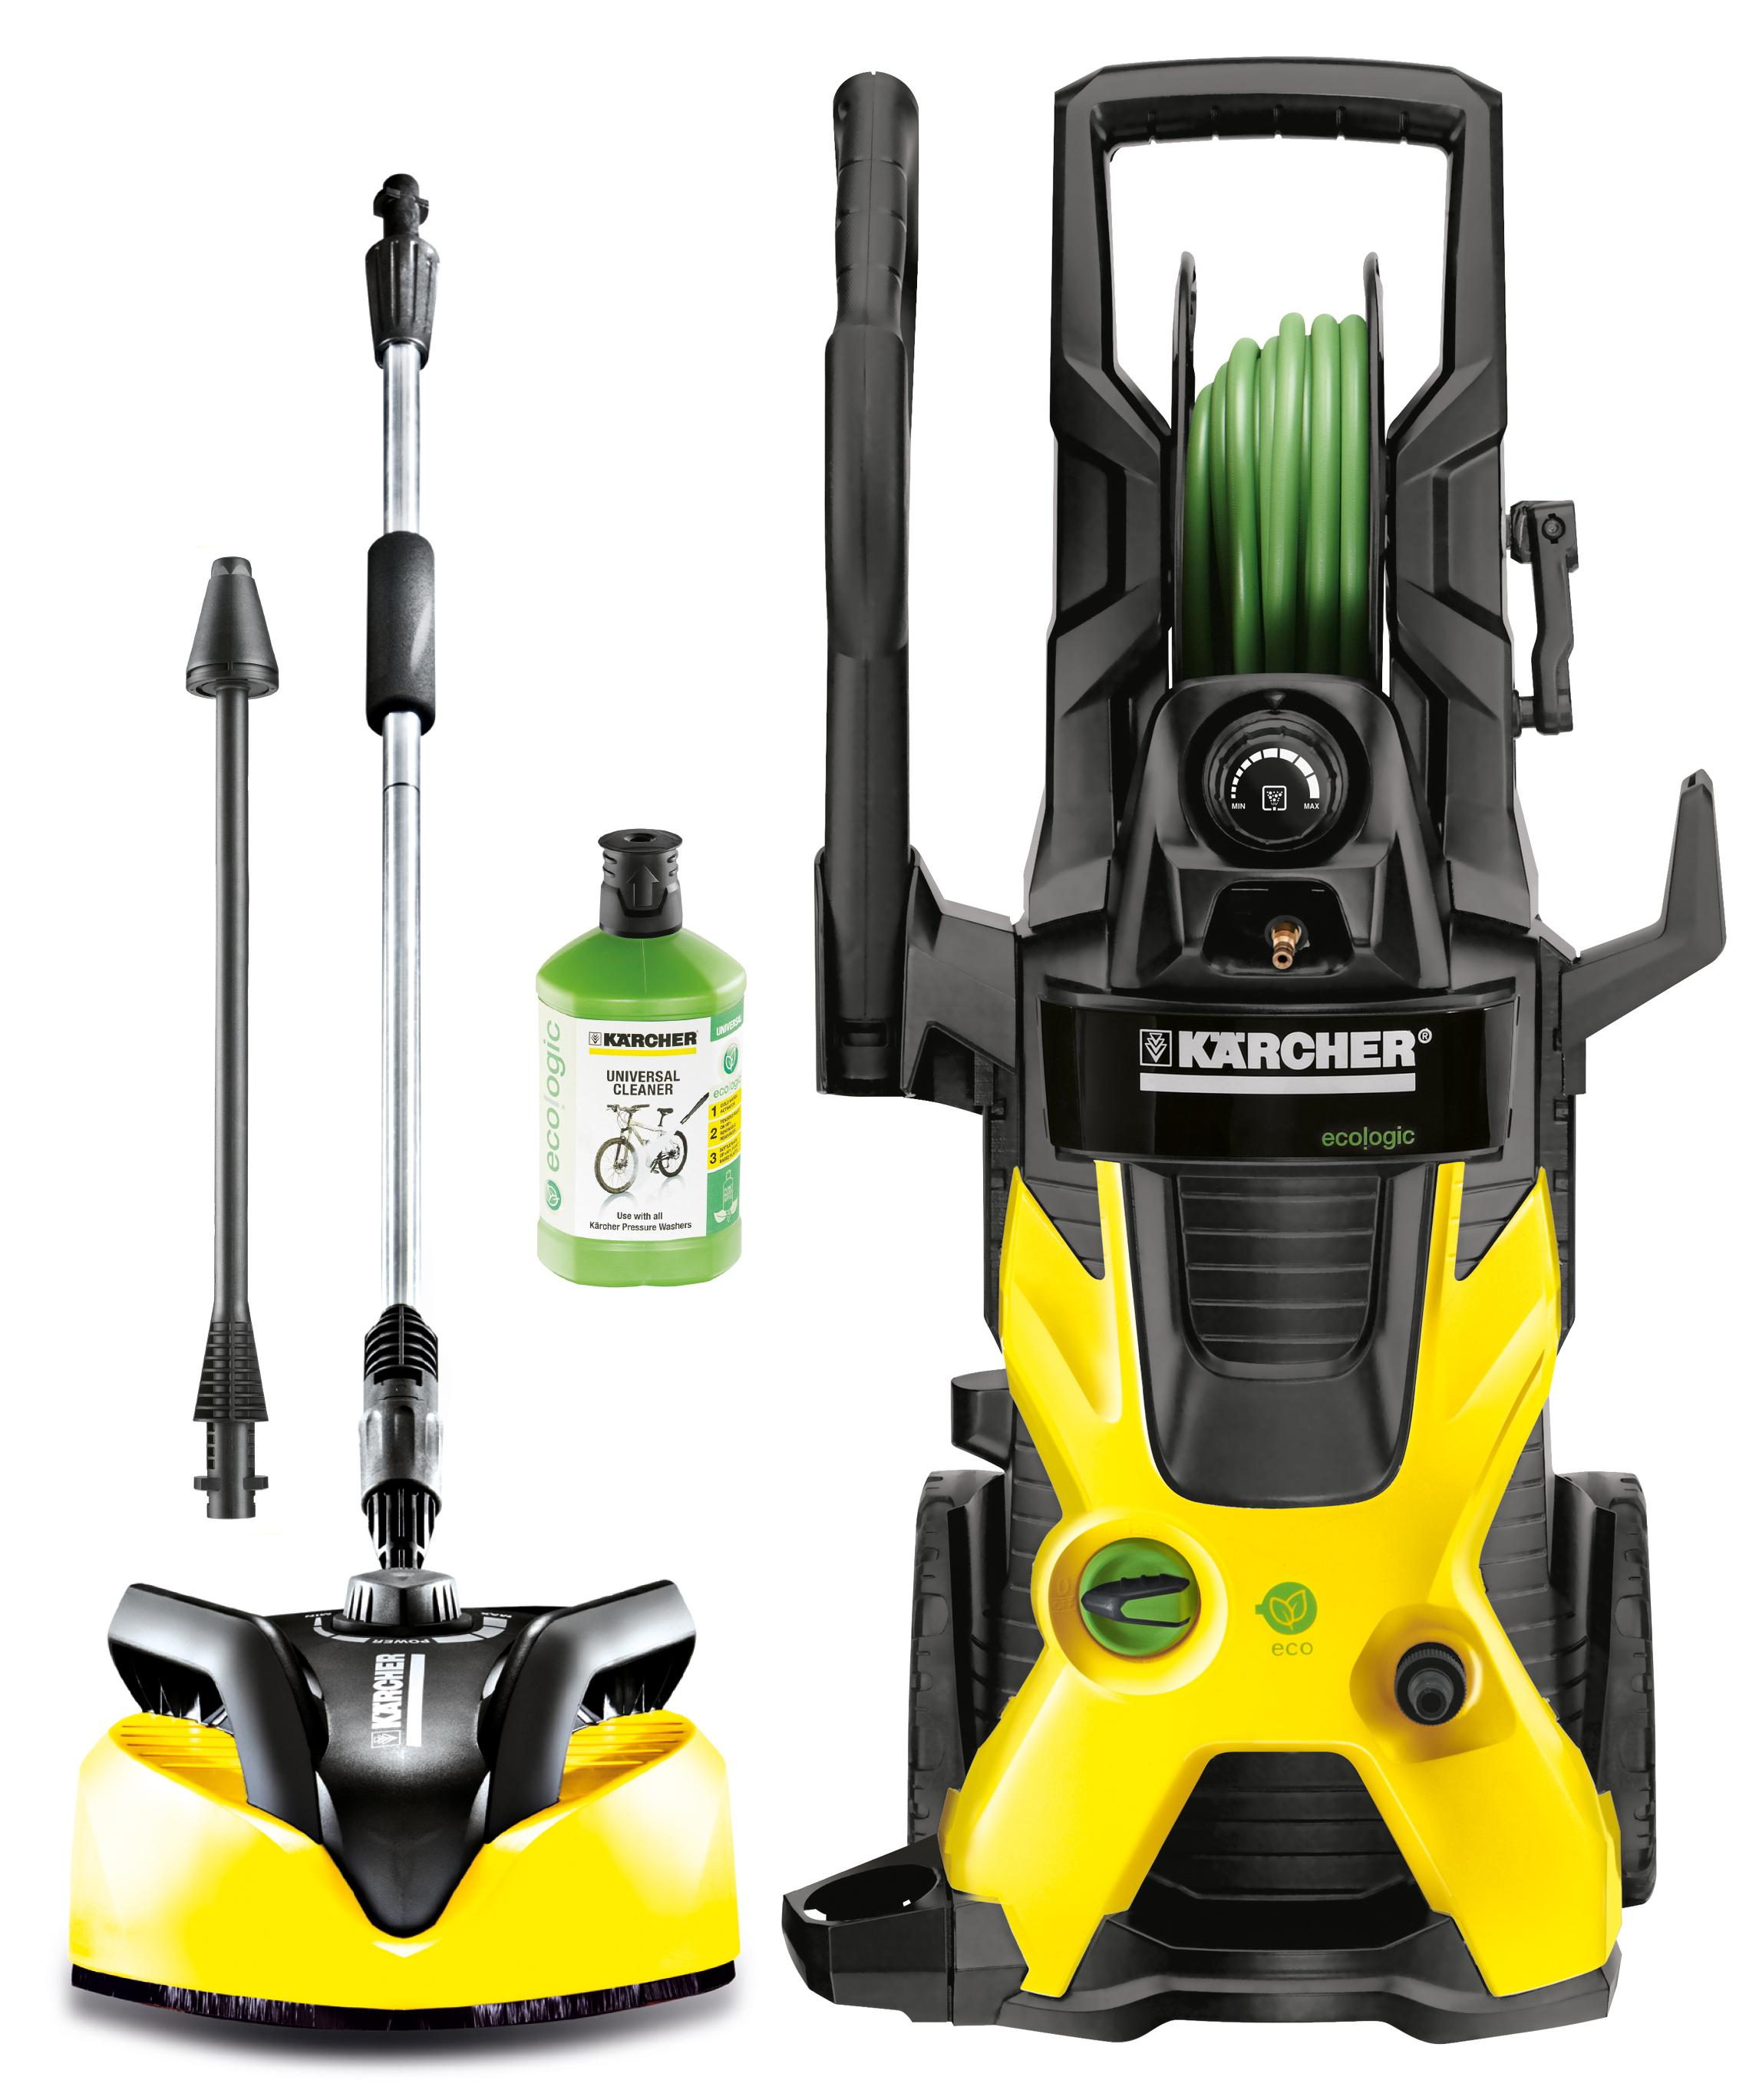 karcher karcher k5 premium domestic pressure washer less. Black Bedroom Furniture Sets. Home Design Ideas